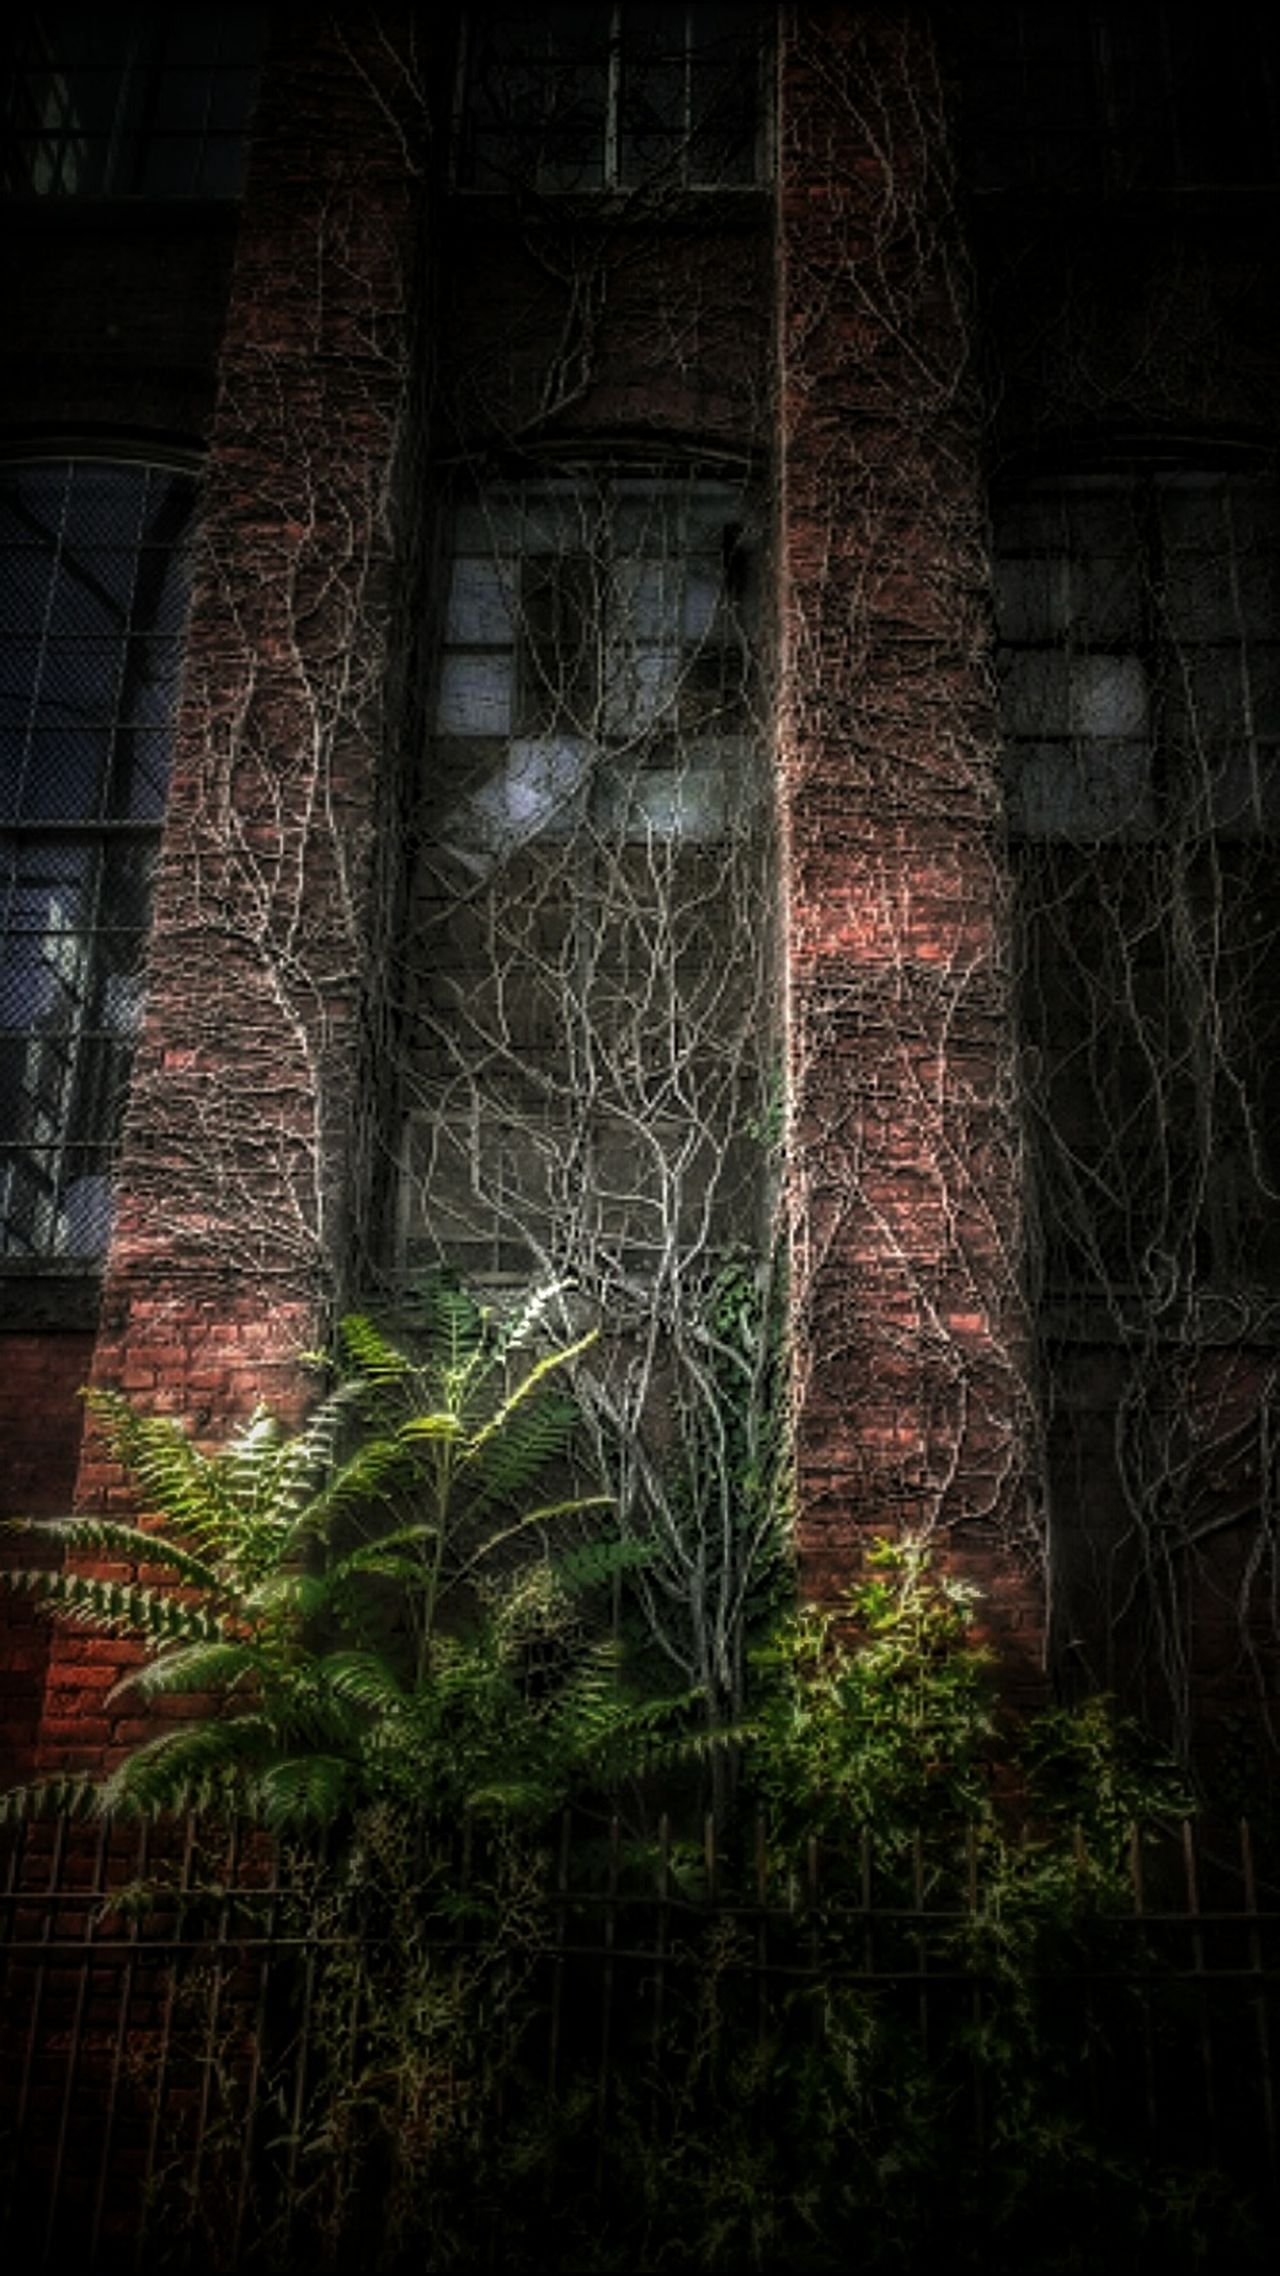 Escape From Arkham... Built Structure Building Exterior Window Creepy Houses AMPt - Abandon Abandoned Buildings Architecture Abandoned AMPt - Street Abandoned & Derelict Weathered AMPt - My Perspective EyeEm Gallery Historic Building Bad Condition Deterioration Nature Taking Over Vines On Wall Creepy Building Windows Ivy Night EyeEm_abandonment